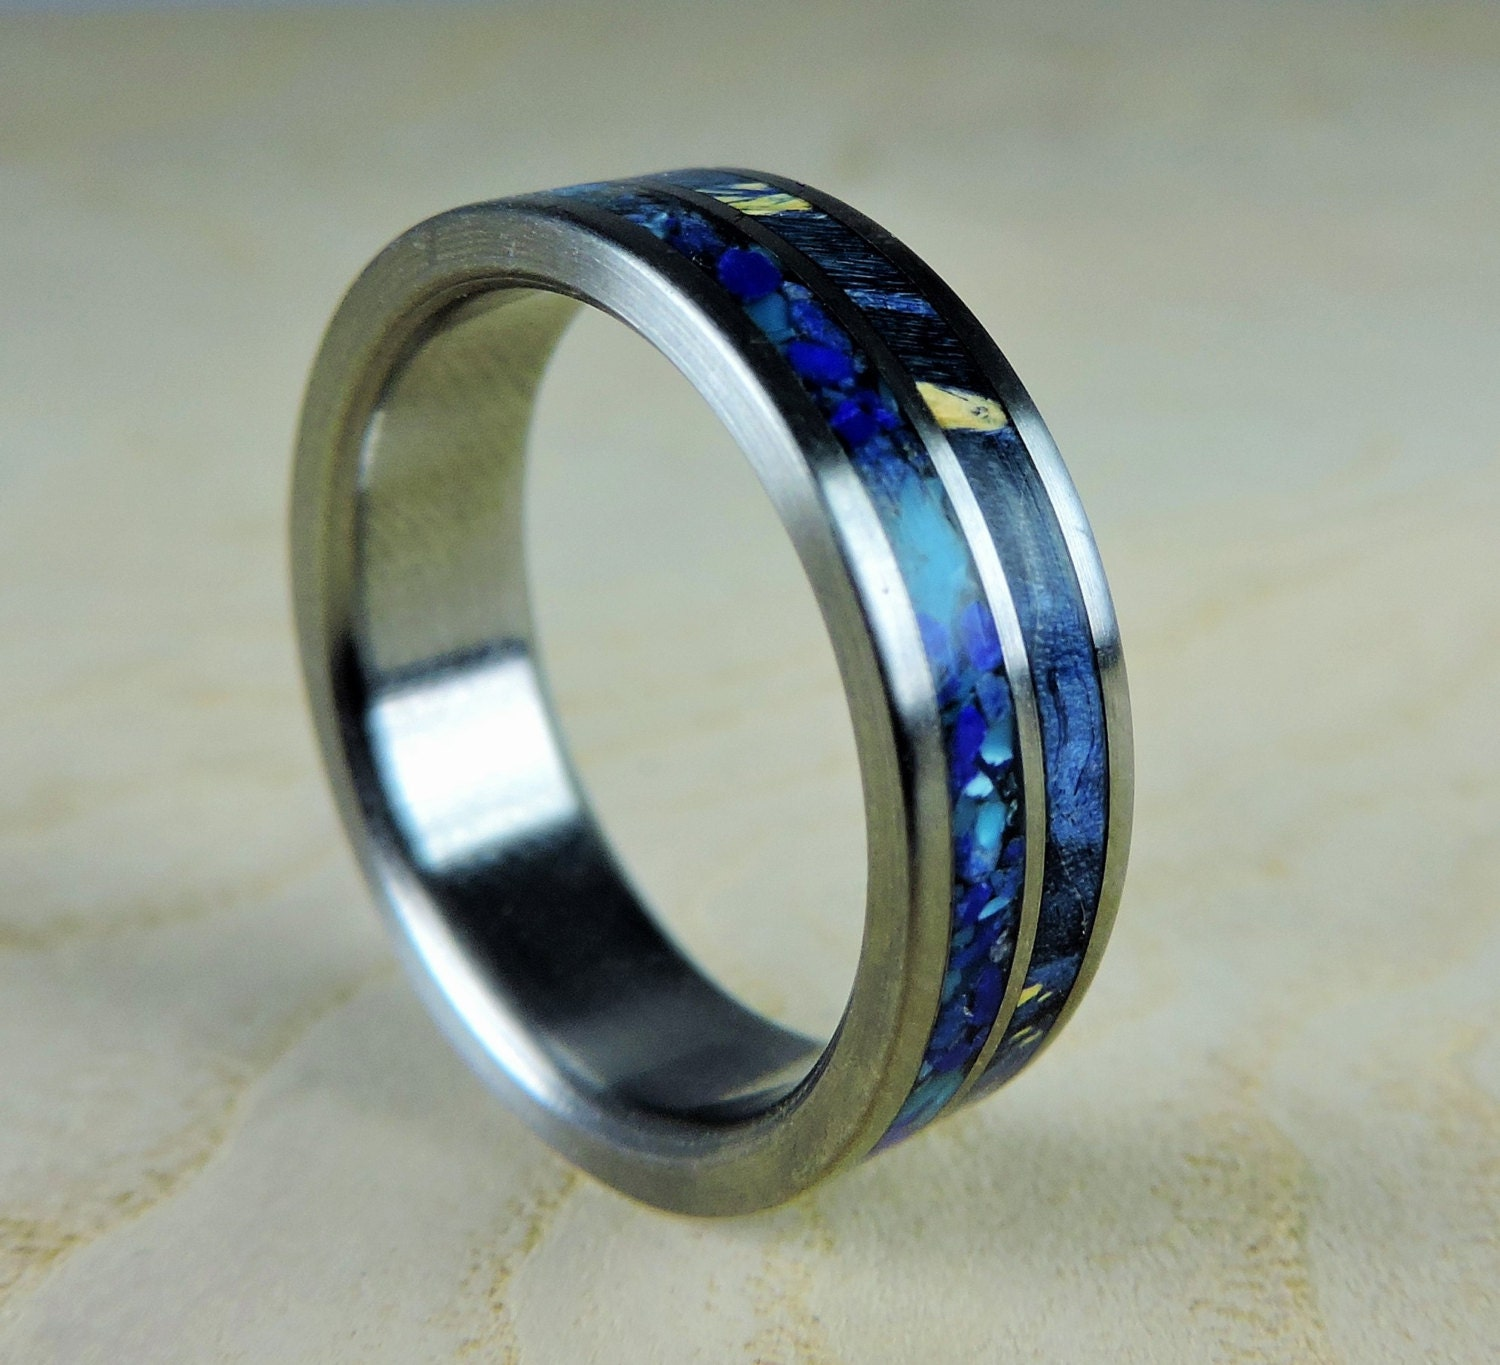 titanium elegant bands pros x reviews rings of com rumor photo mens wedding millsanjuan